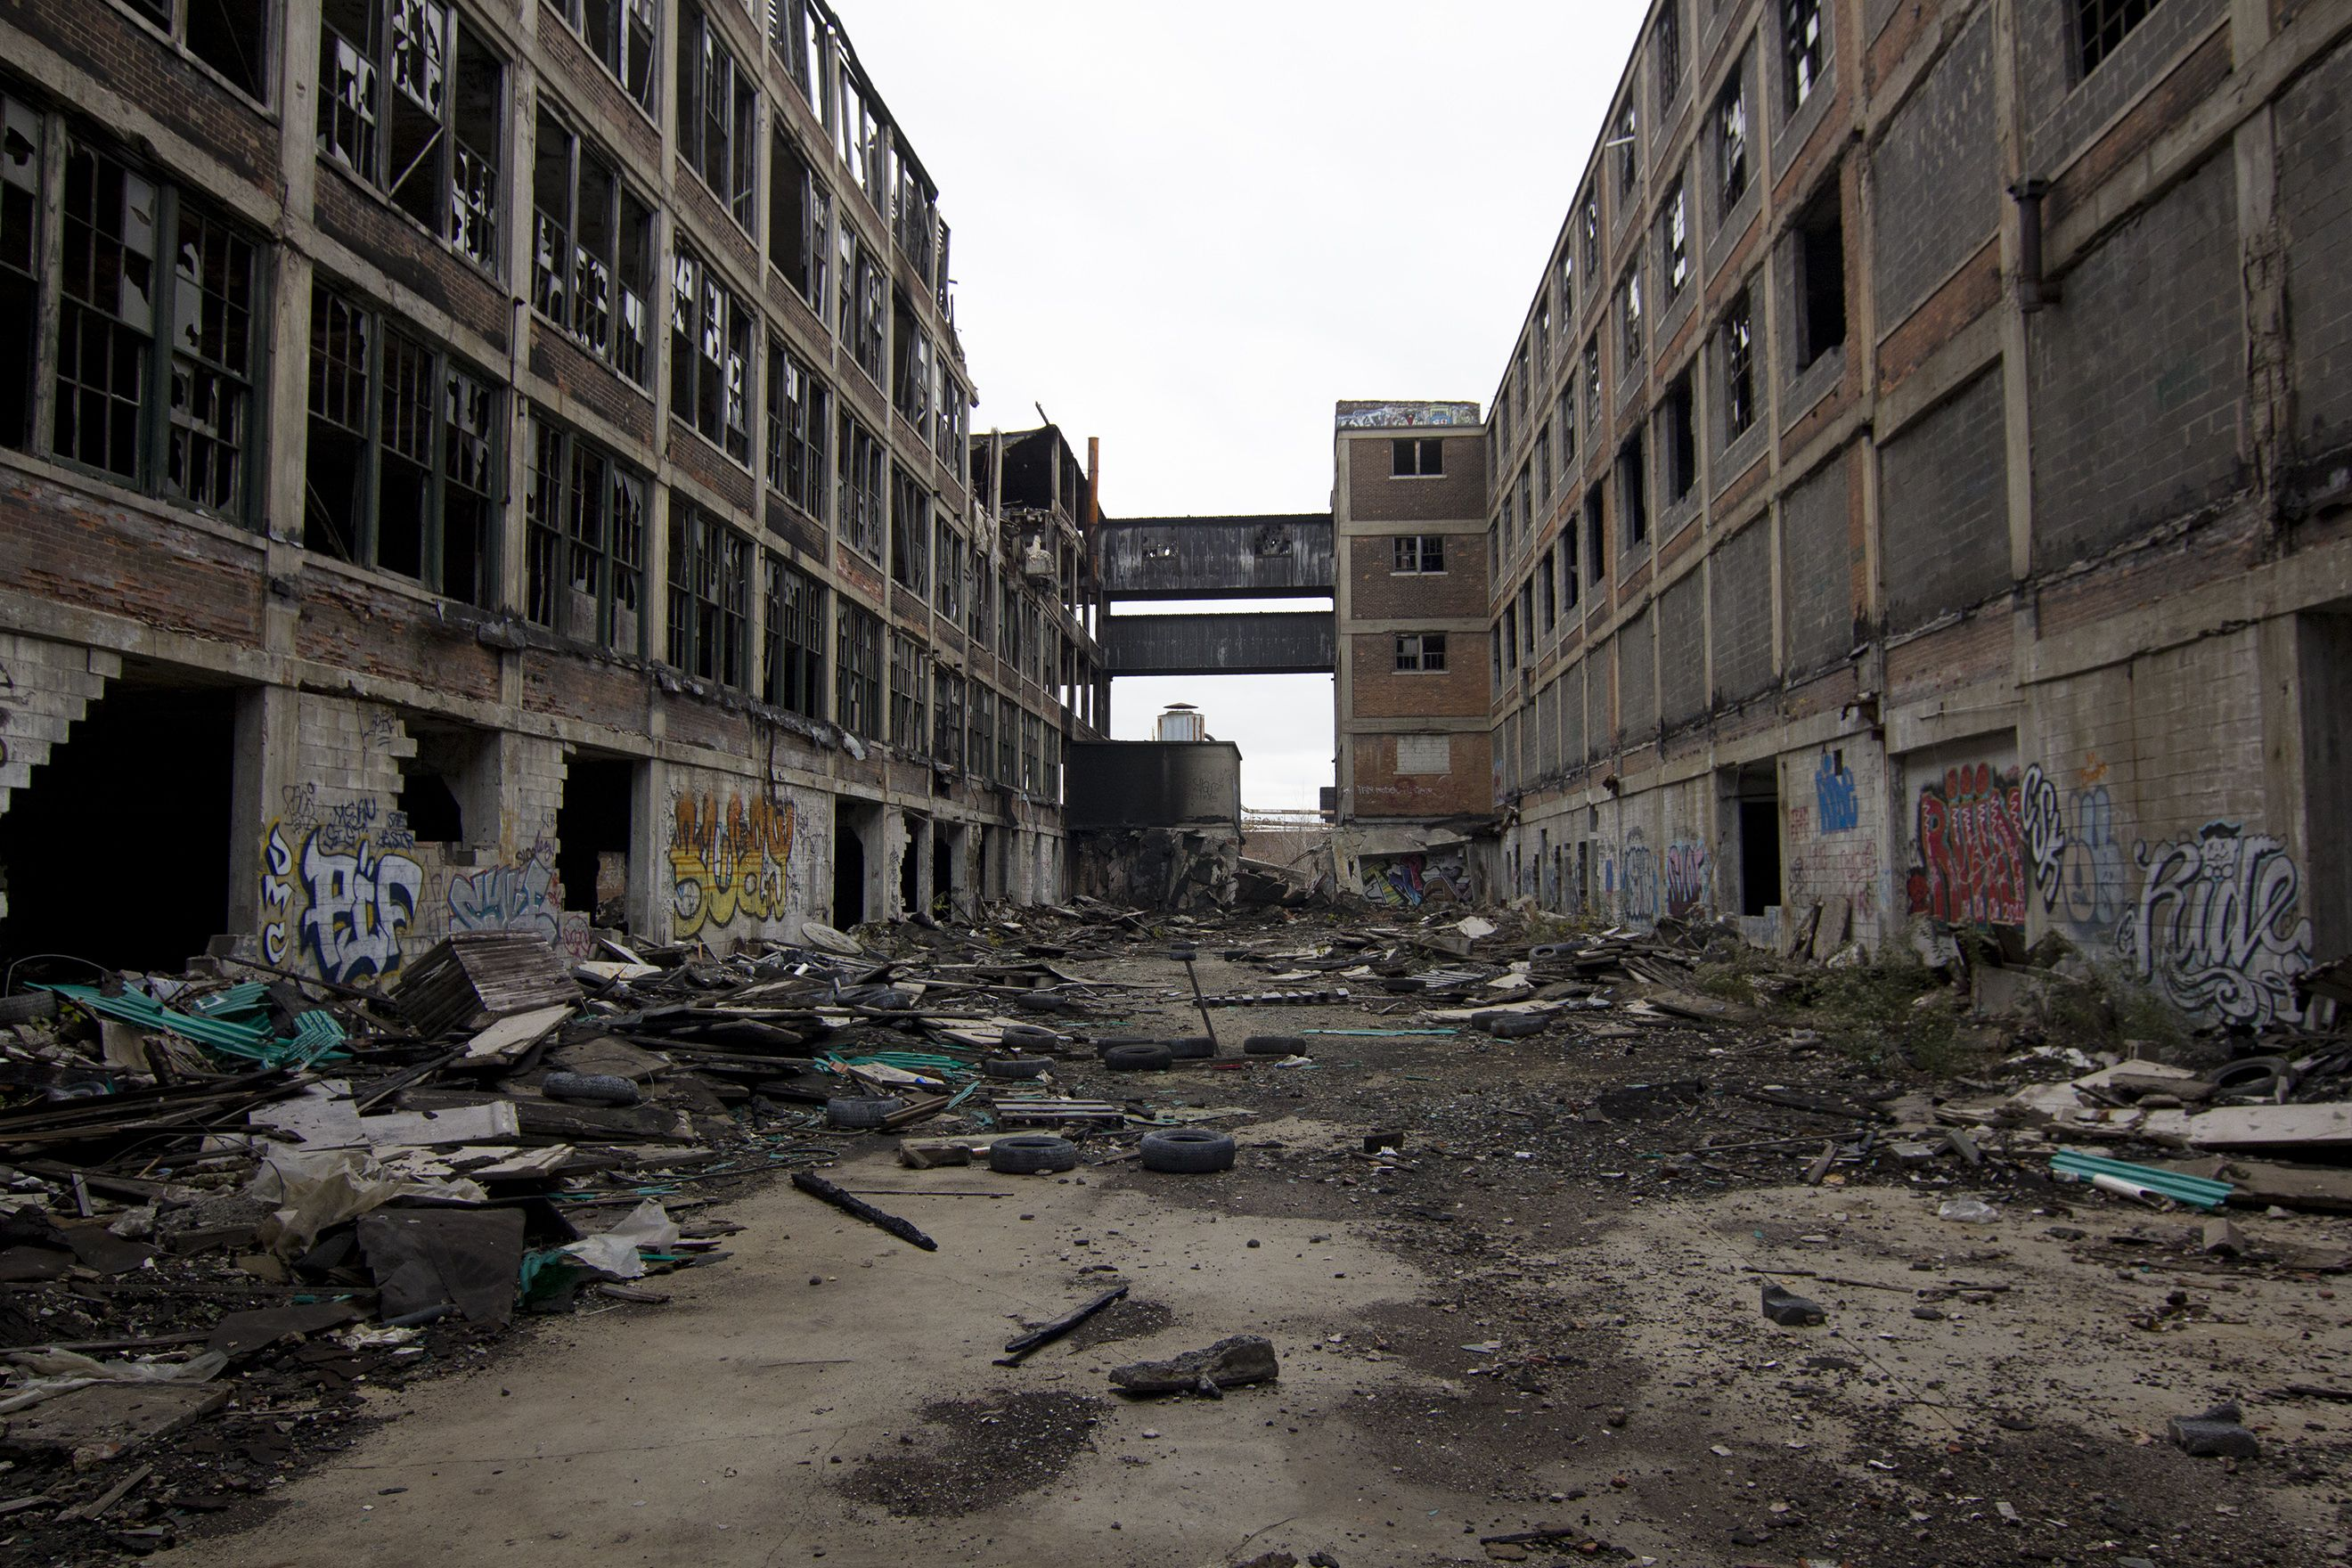 The Packard Automotive Plant Is A Former Automobile Manufacturing